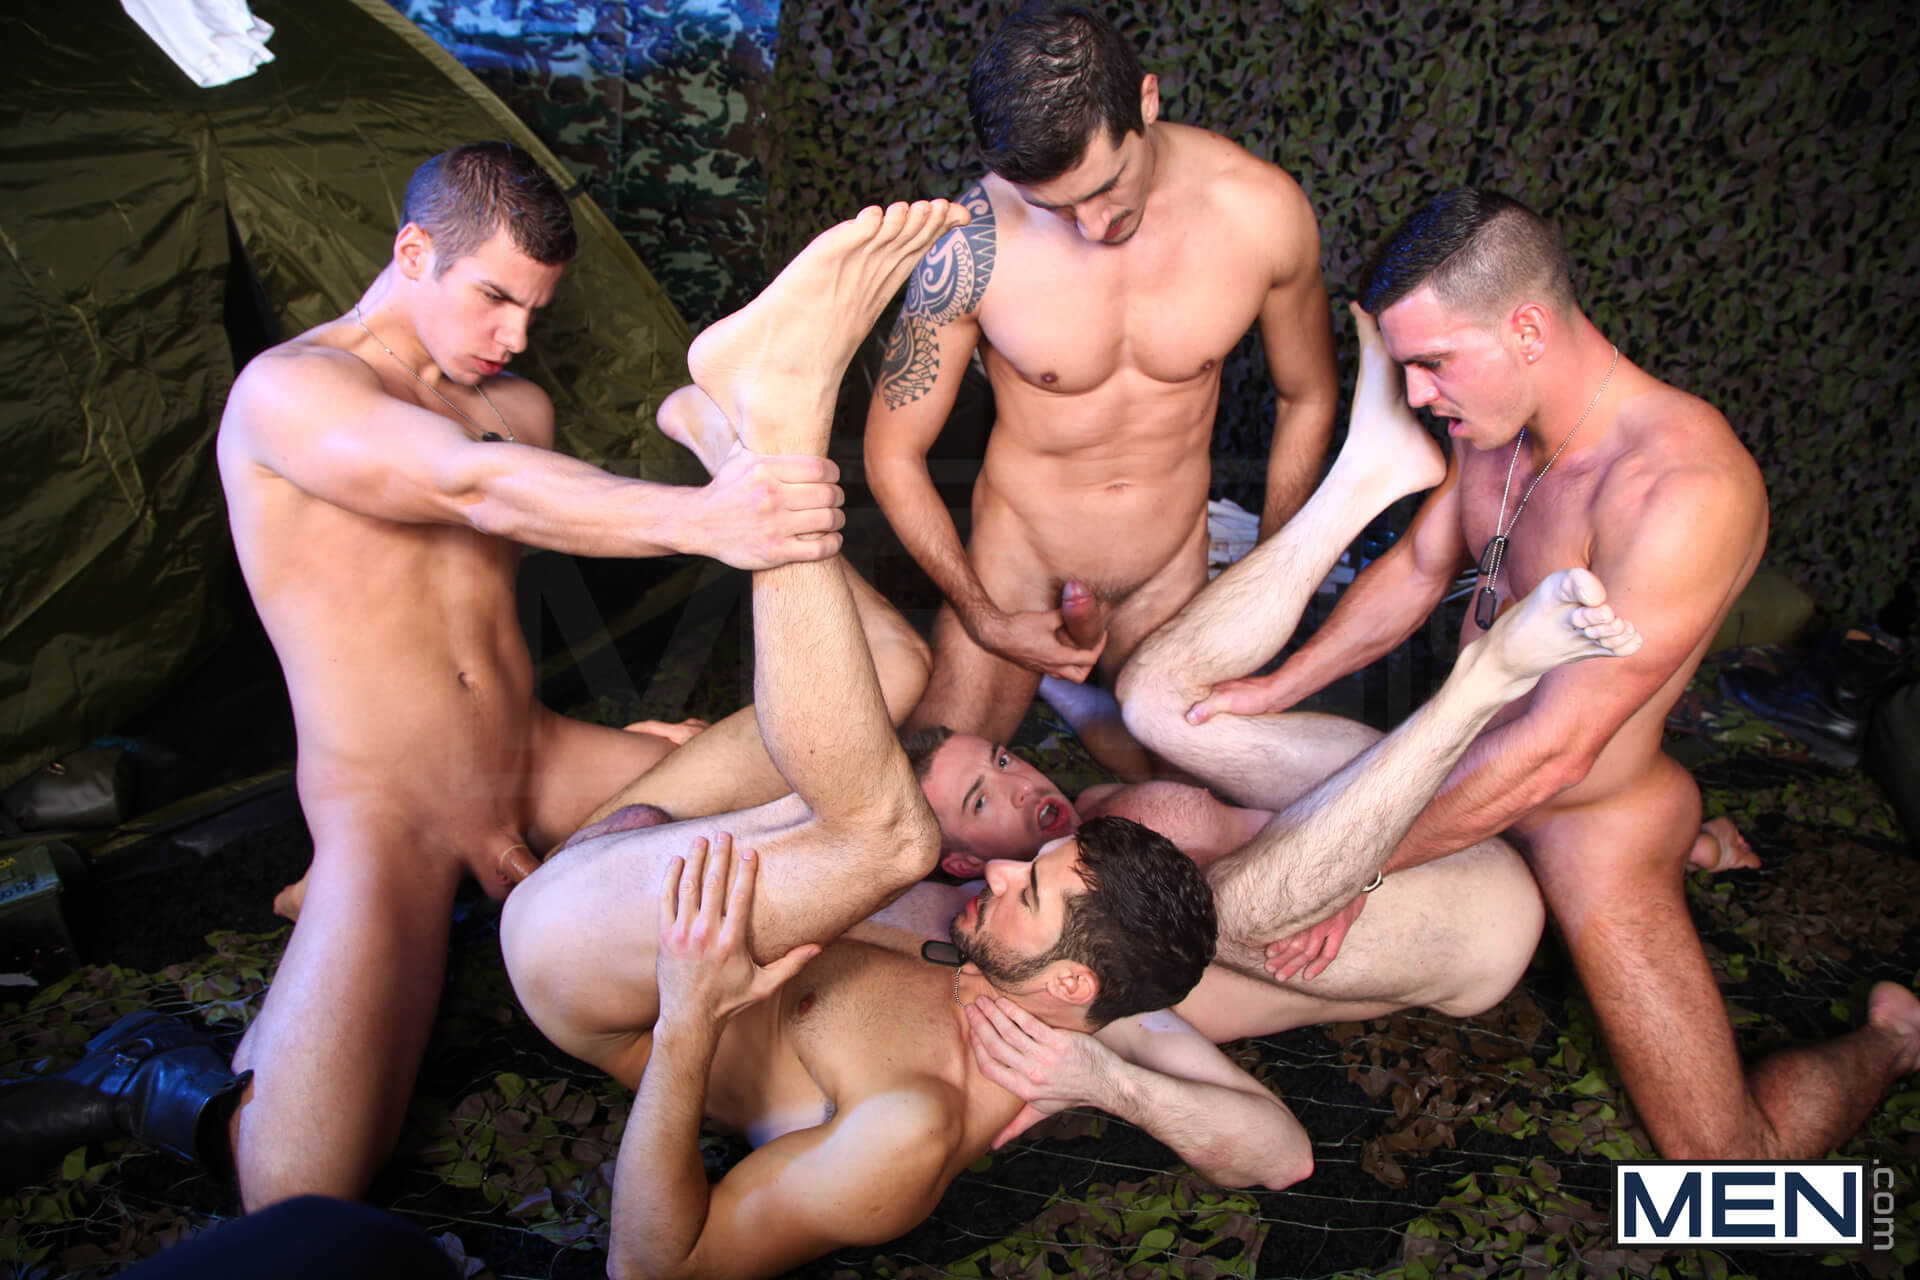 men men of uk the drill sergeant part 3 dean monroe jay roberts paddy obrian paul walker scott hunter gay porn blog image 17